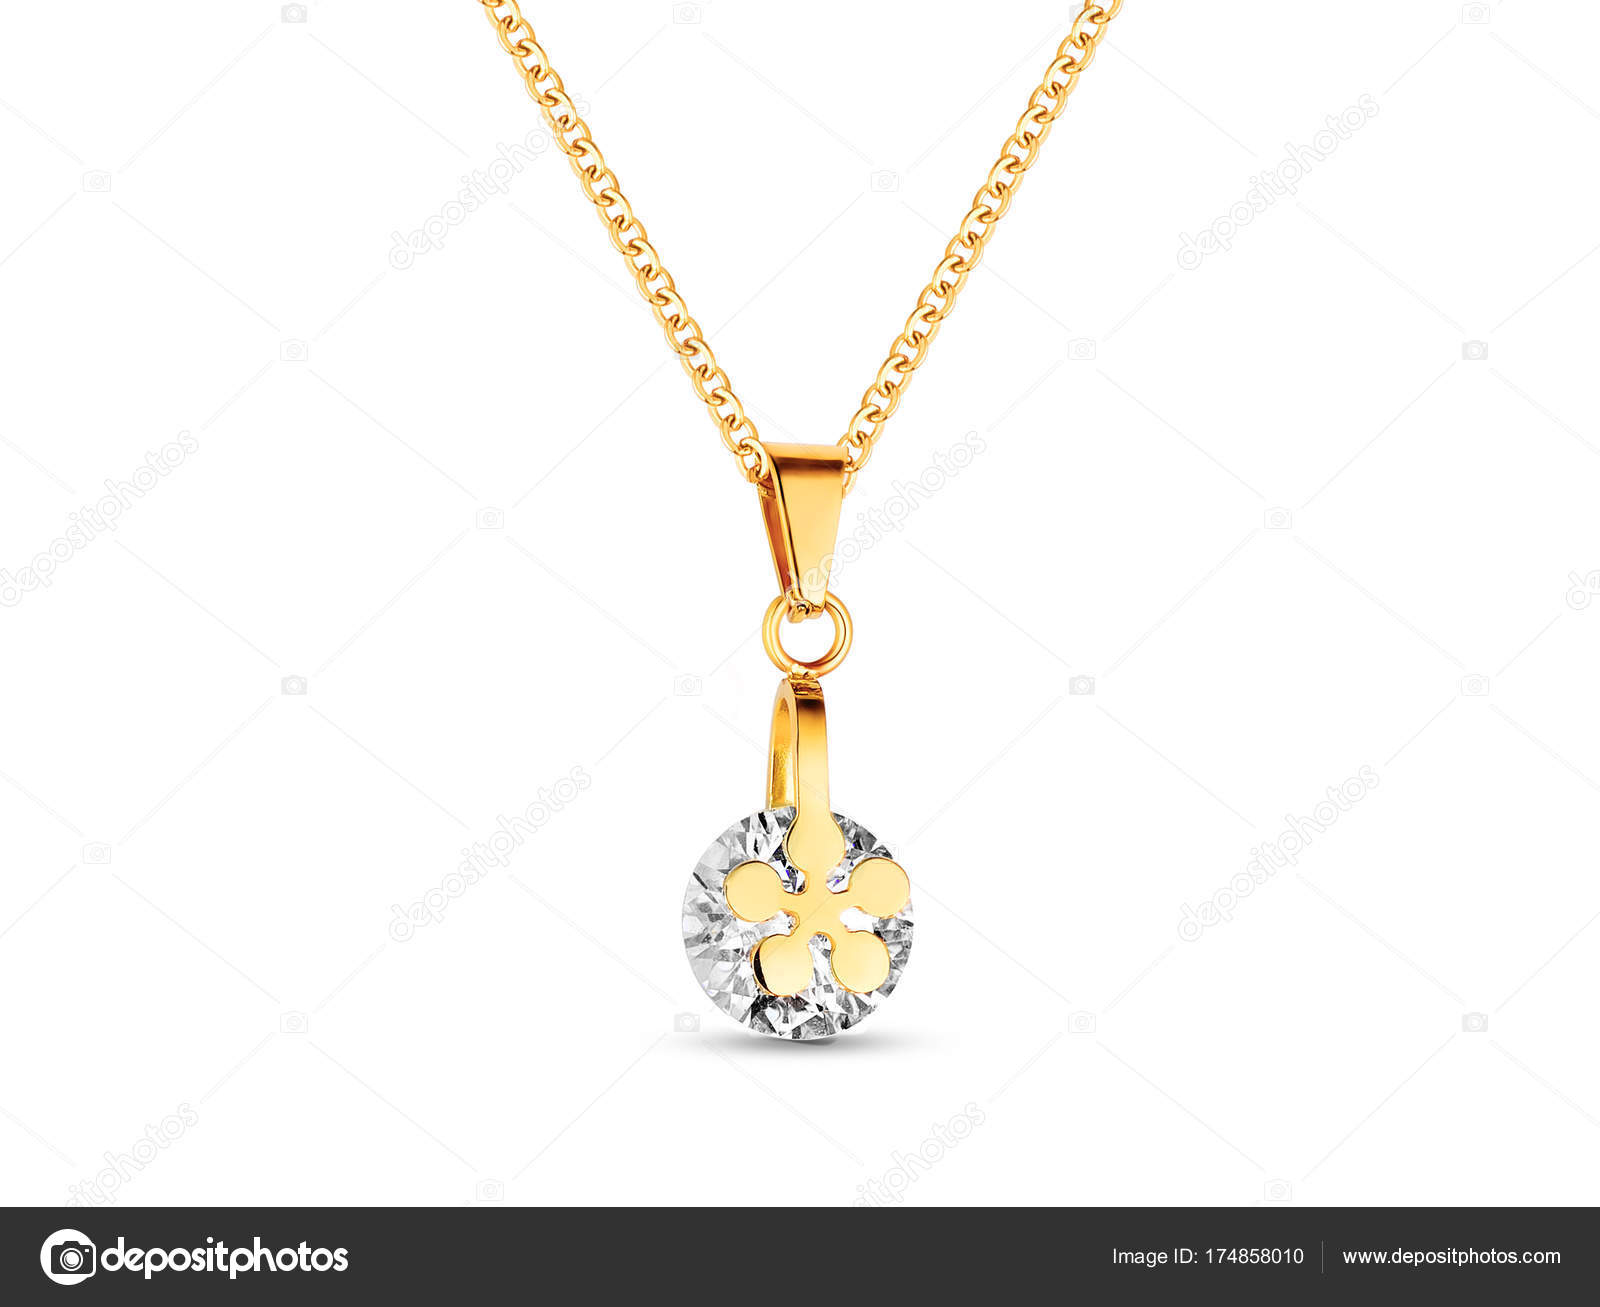 Golden necklace crystals white background rose gold single diamond golden necklace crystals white background rose gold single diamond pendant stock photo aloadofball Choice Image